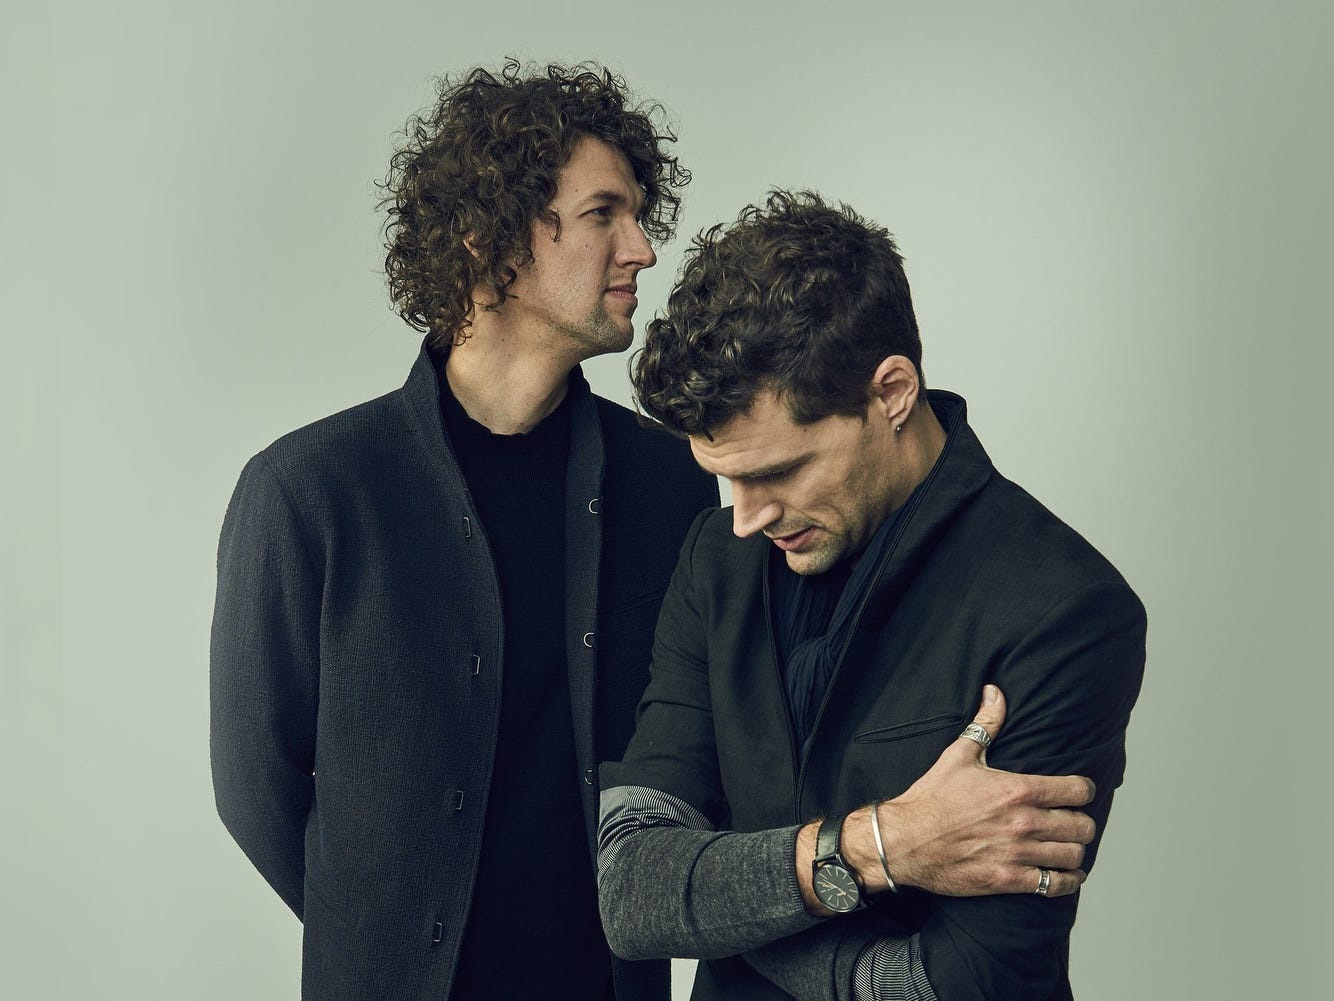 OCT. 14